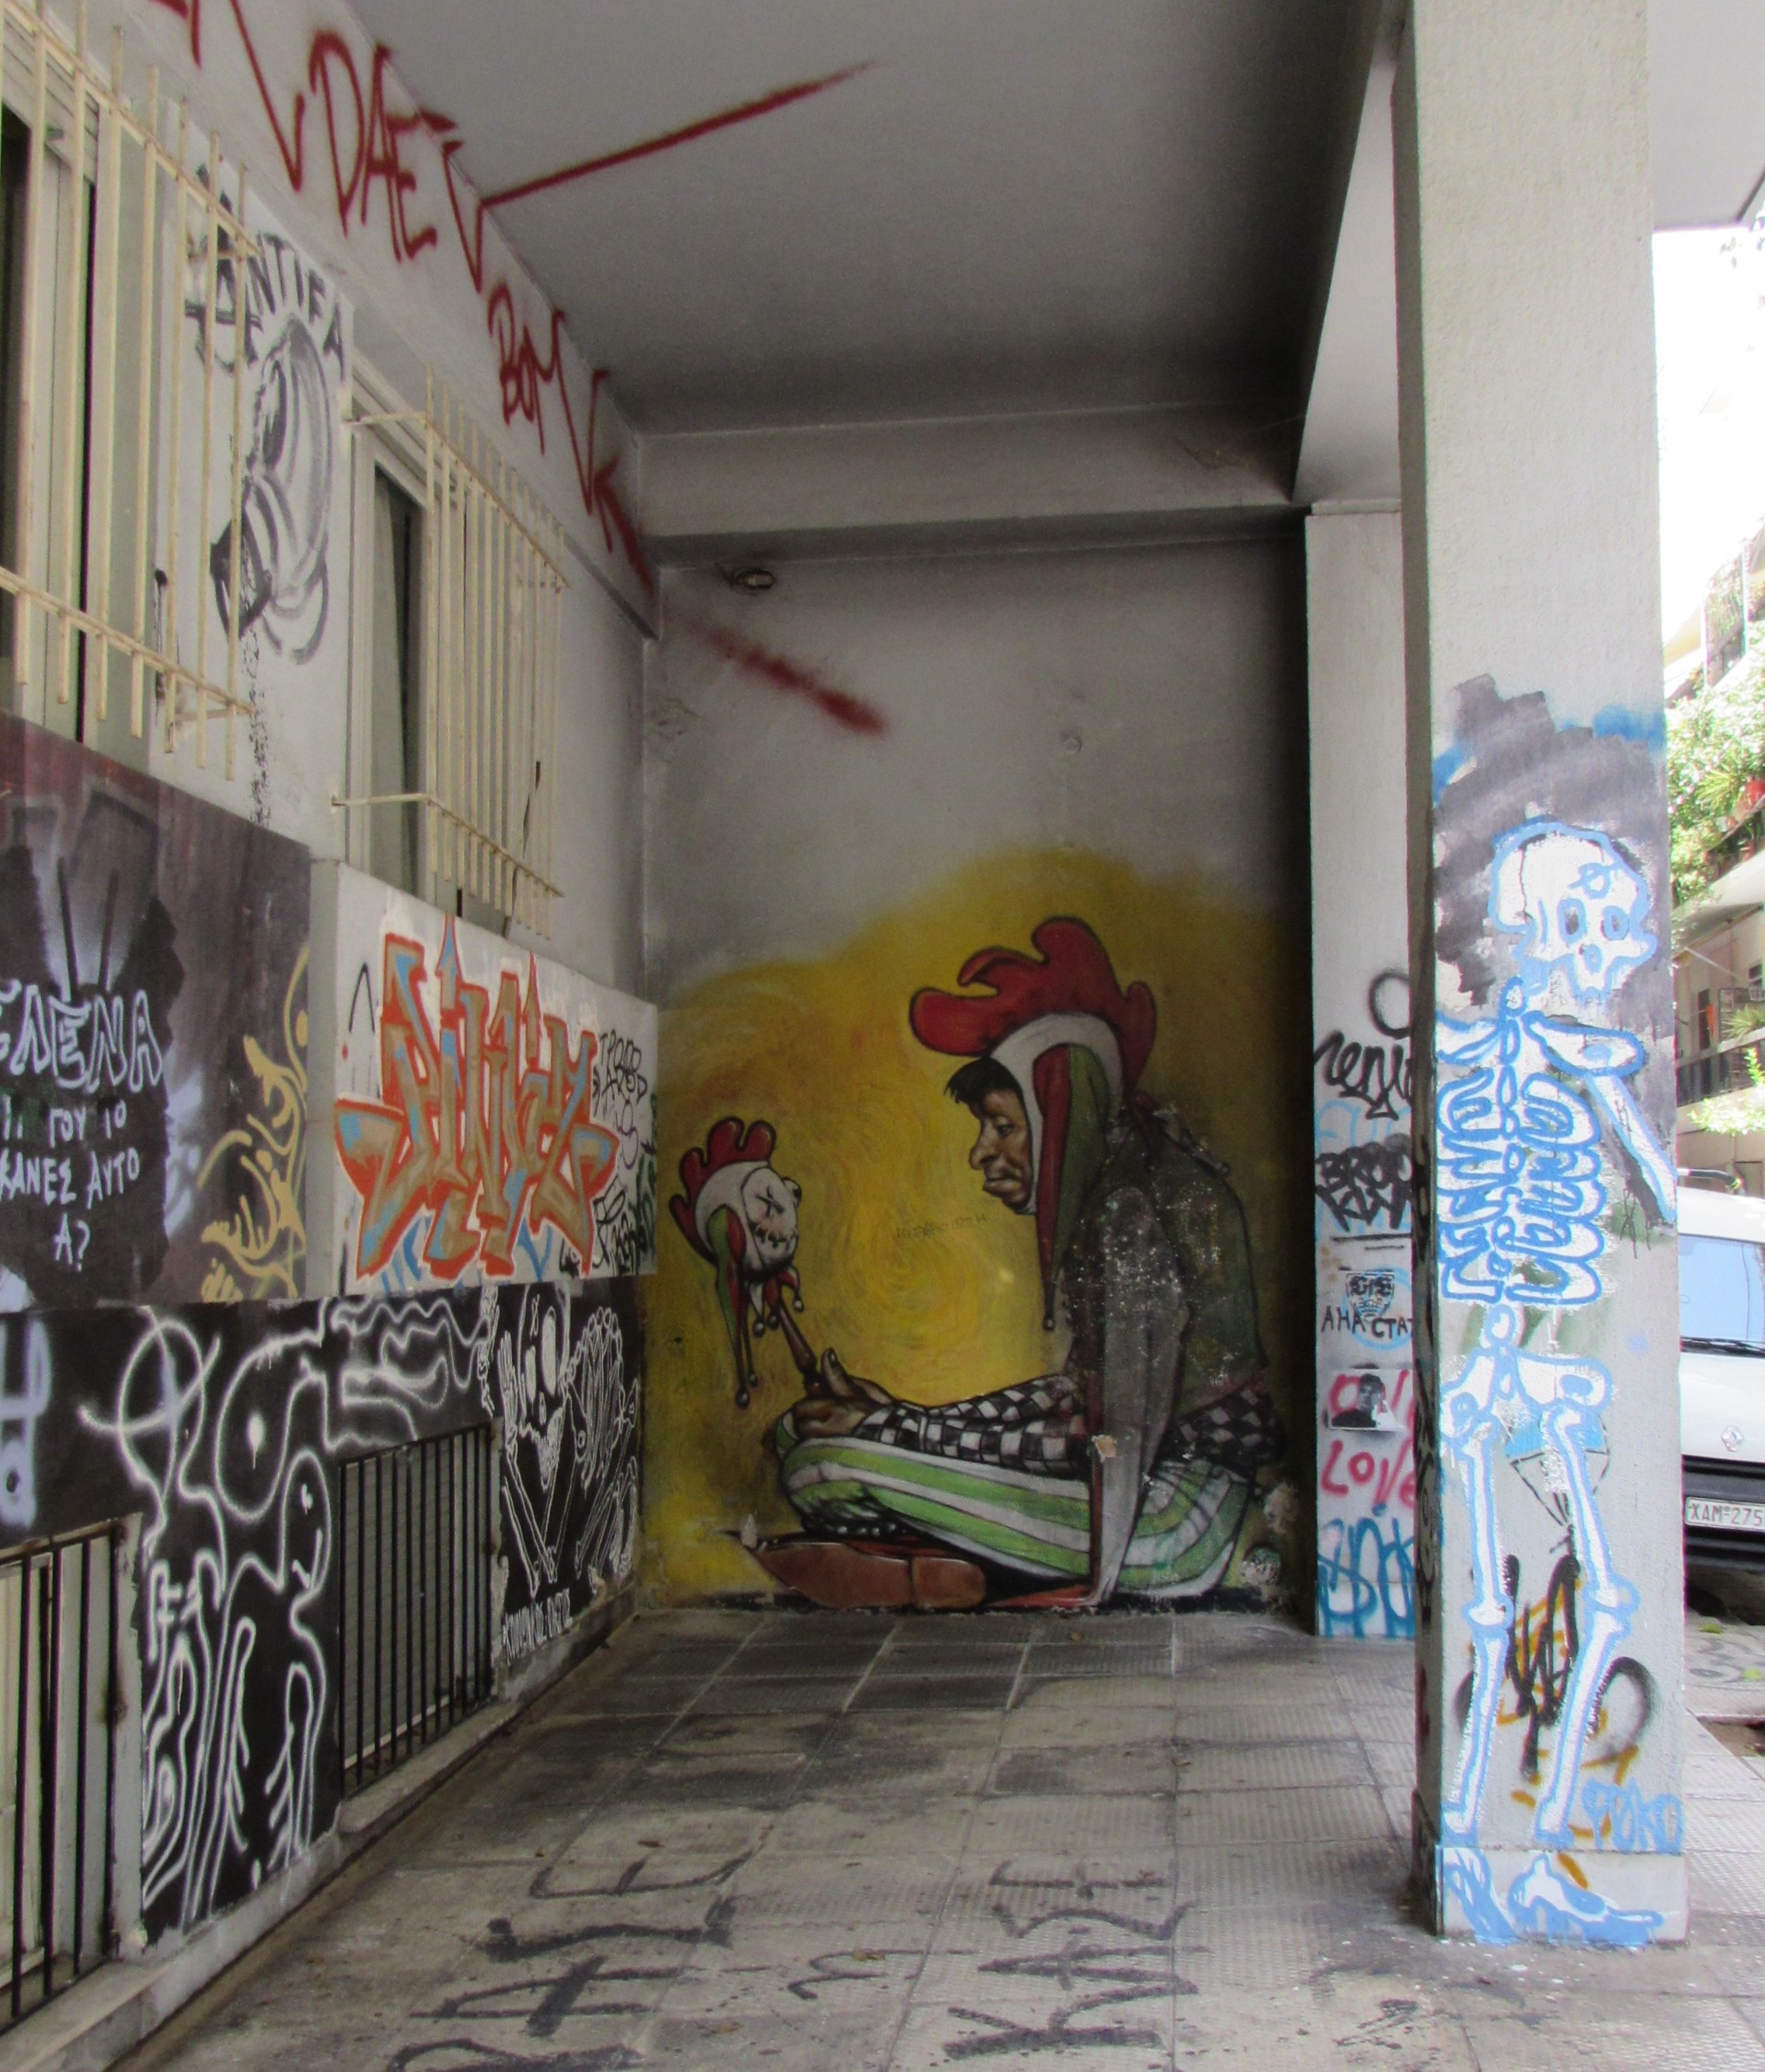 Graffiti - man in chicken suit